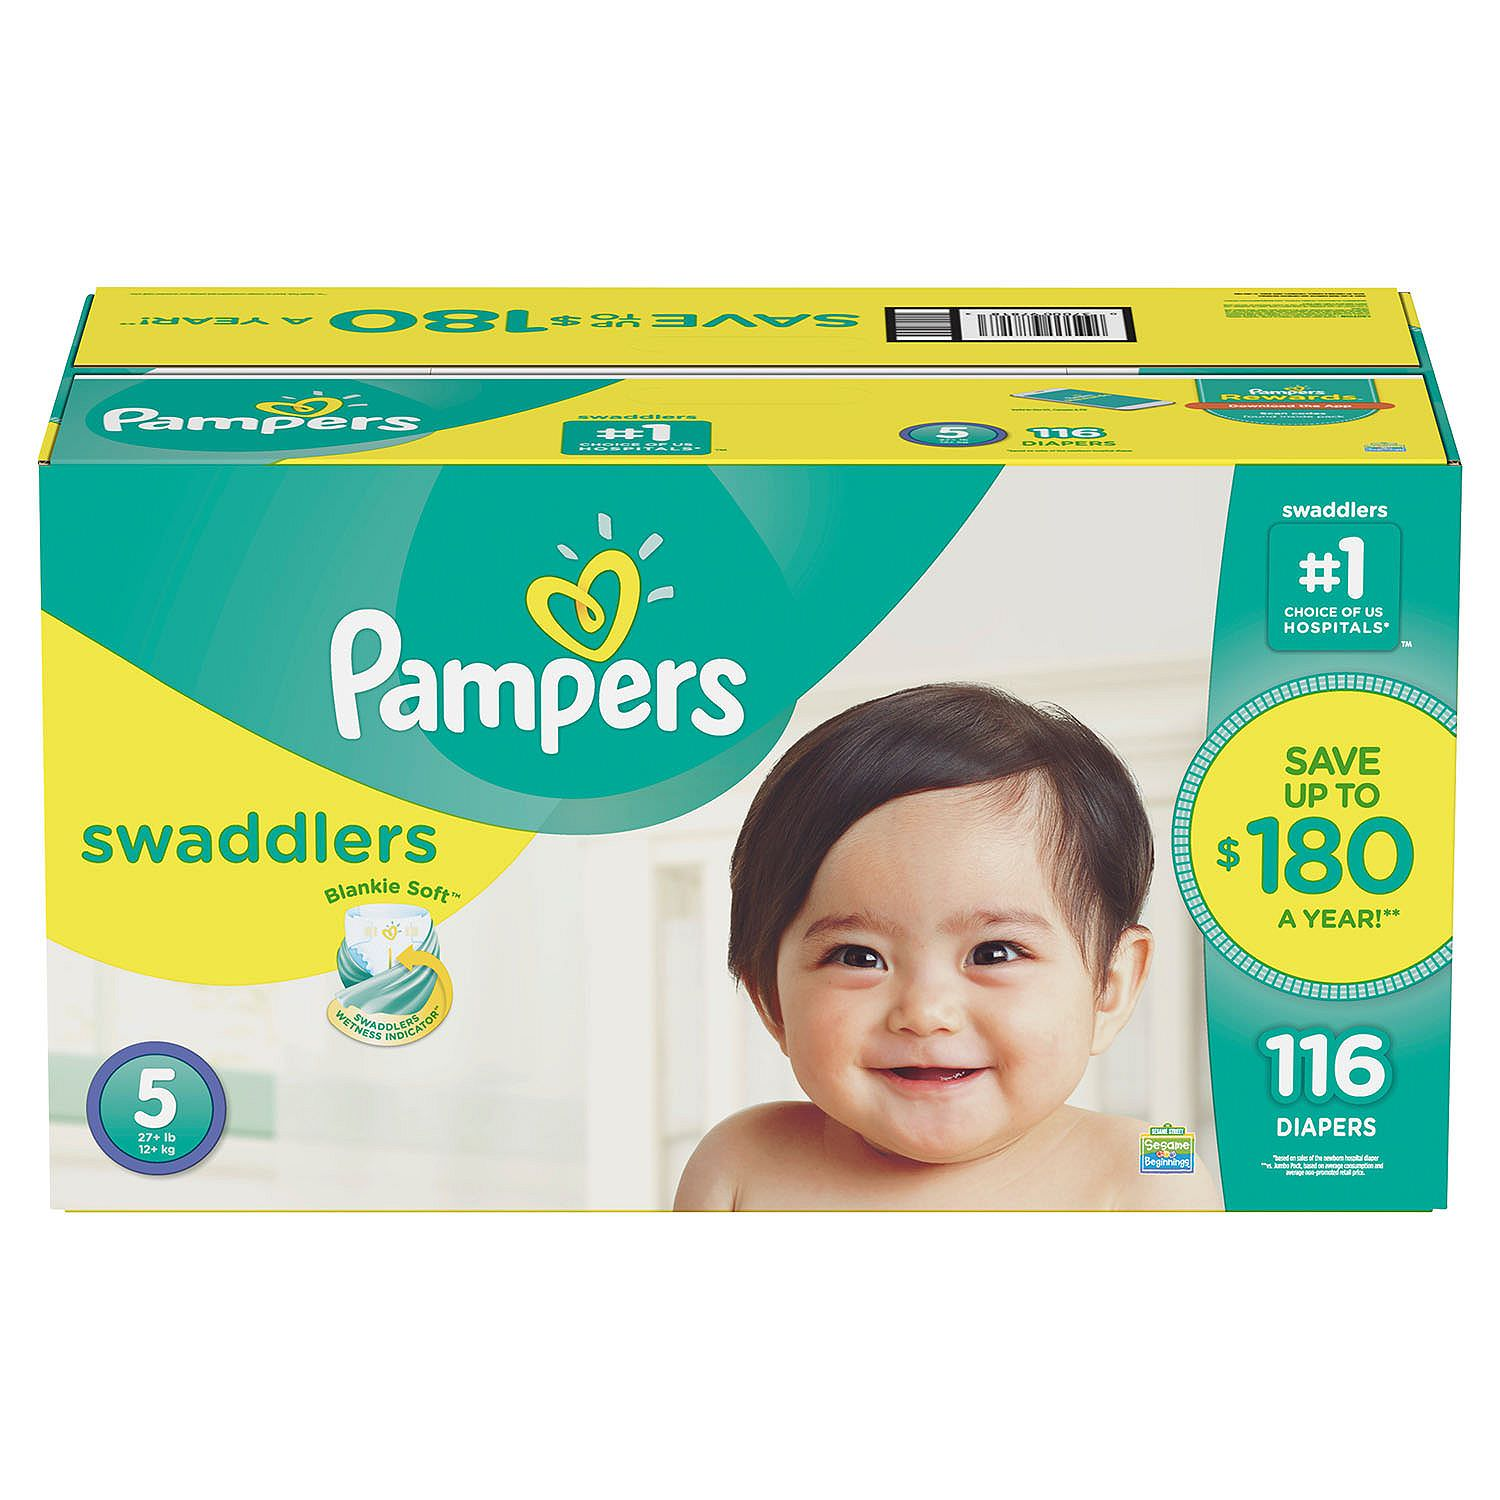 Pampers Swaddlers Diapers Size 5 -116 ct. (27+ lb.)